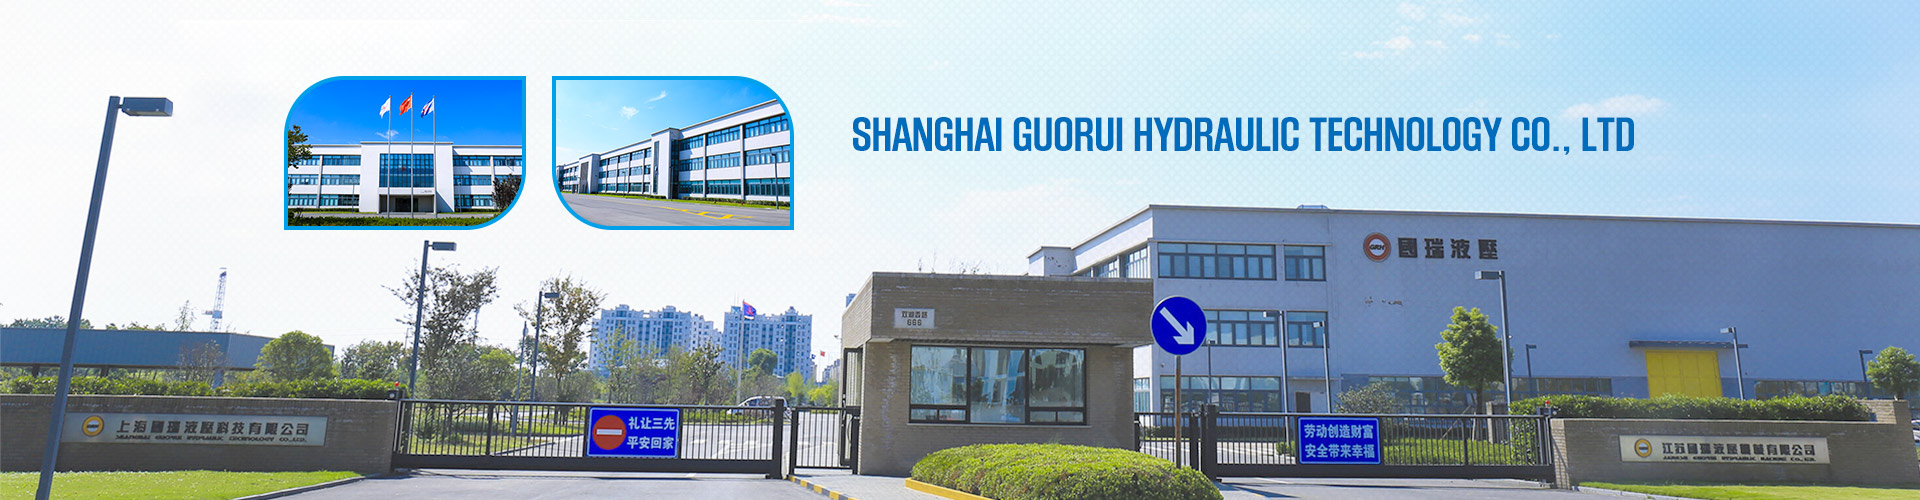 Shanghai Guorui hydraulesch Technology Co., Ltd